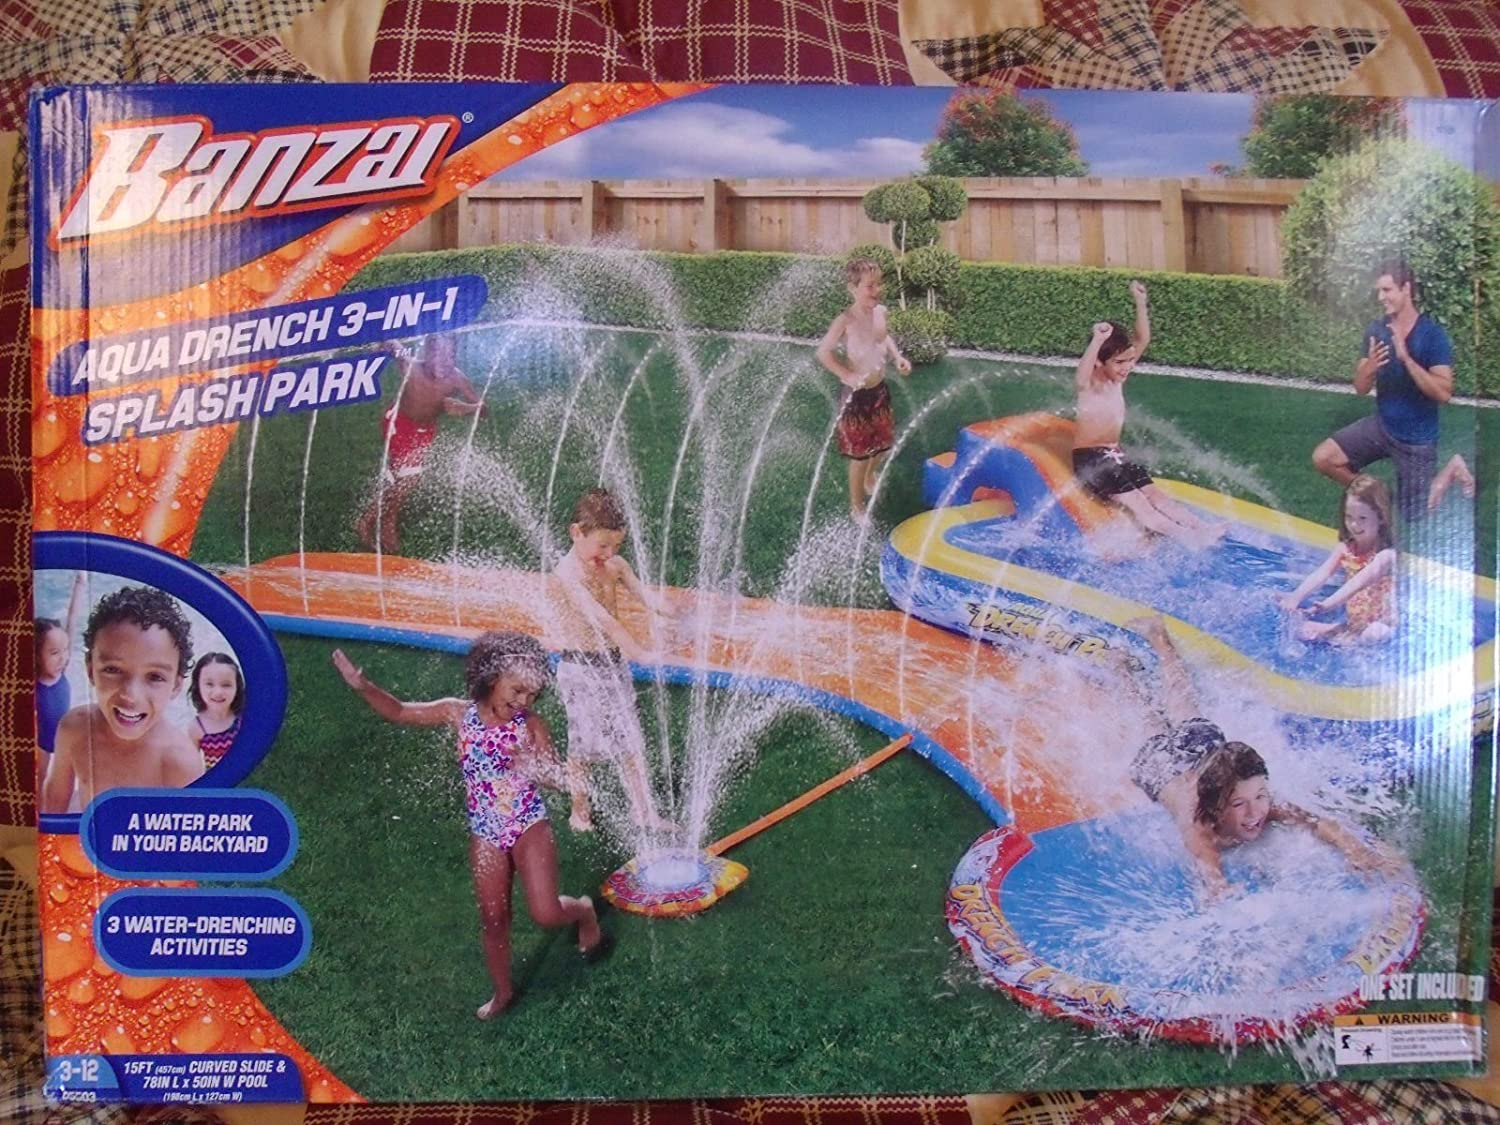 Spring & Summer Toys Banzai 15ft-Long Aqua Drench 3-in-1 Splash Park Pool Slide and Sprinkler by Banzai